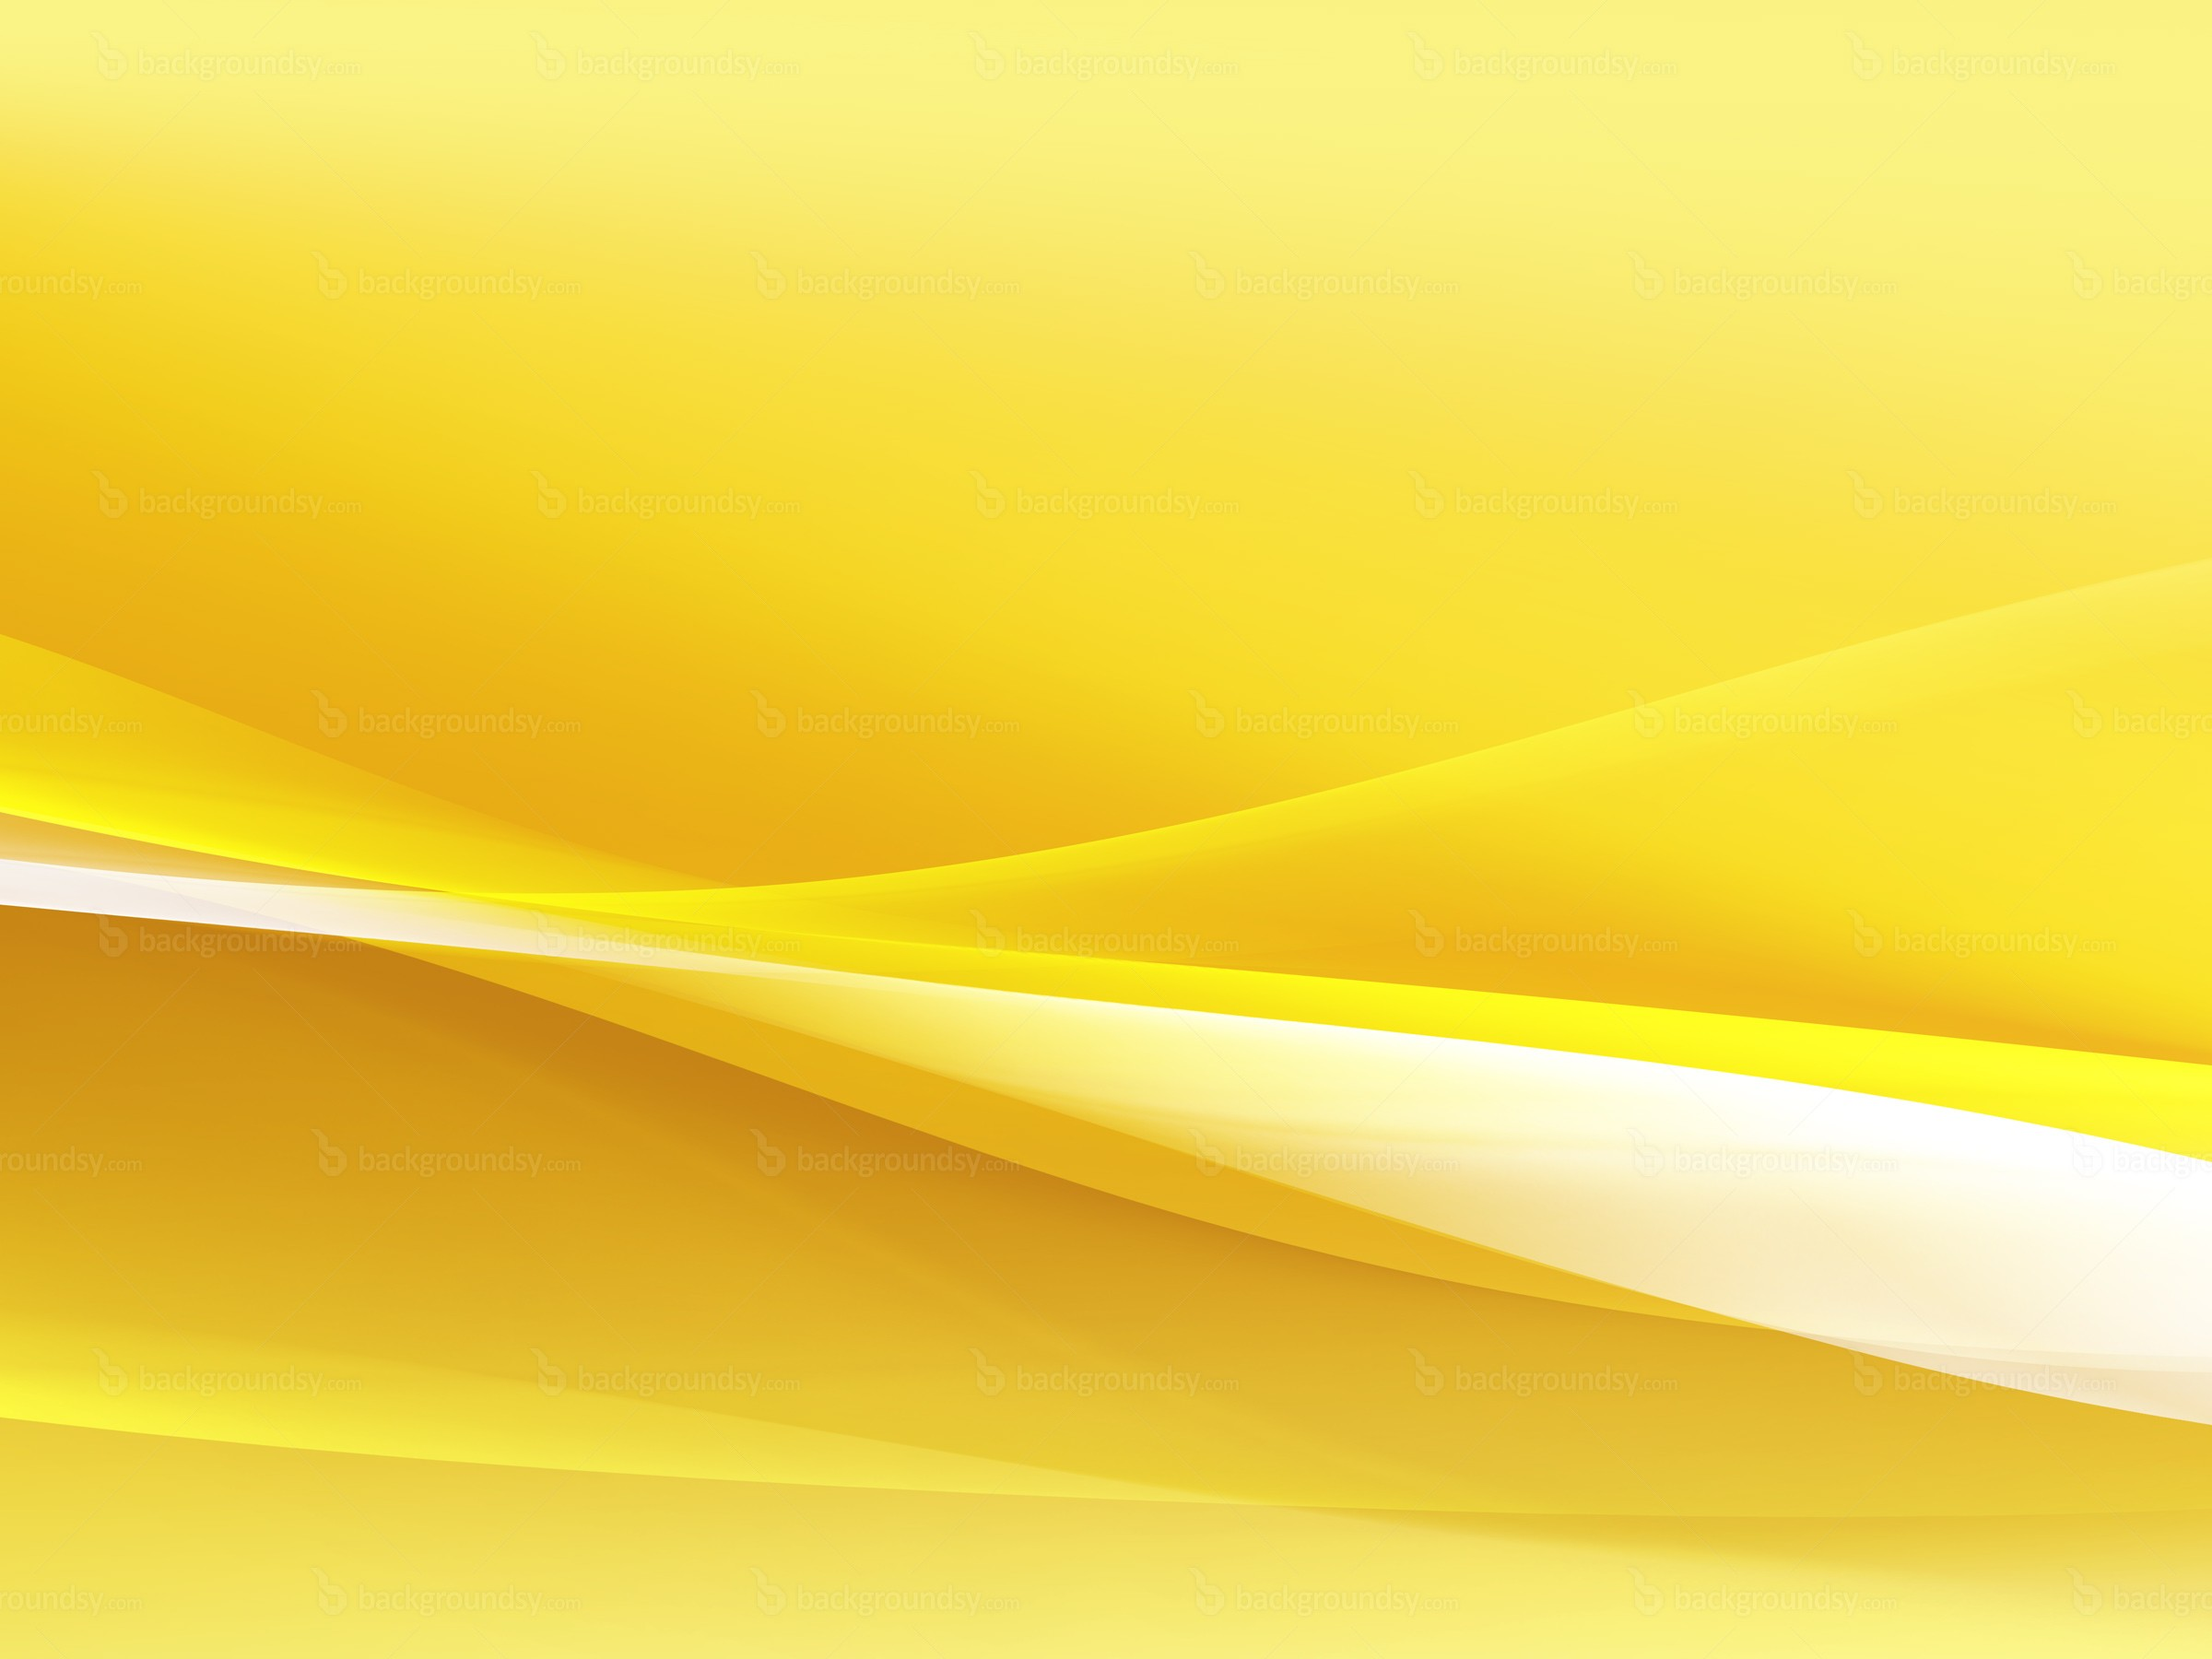 50+ Yellow Backgrounds ·① Download Free Amazing Full HD